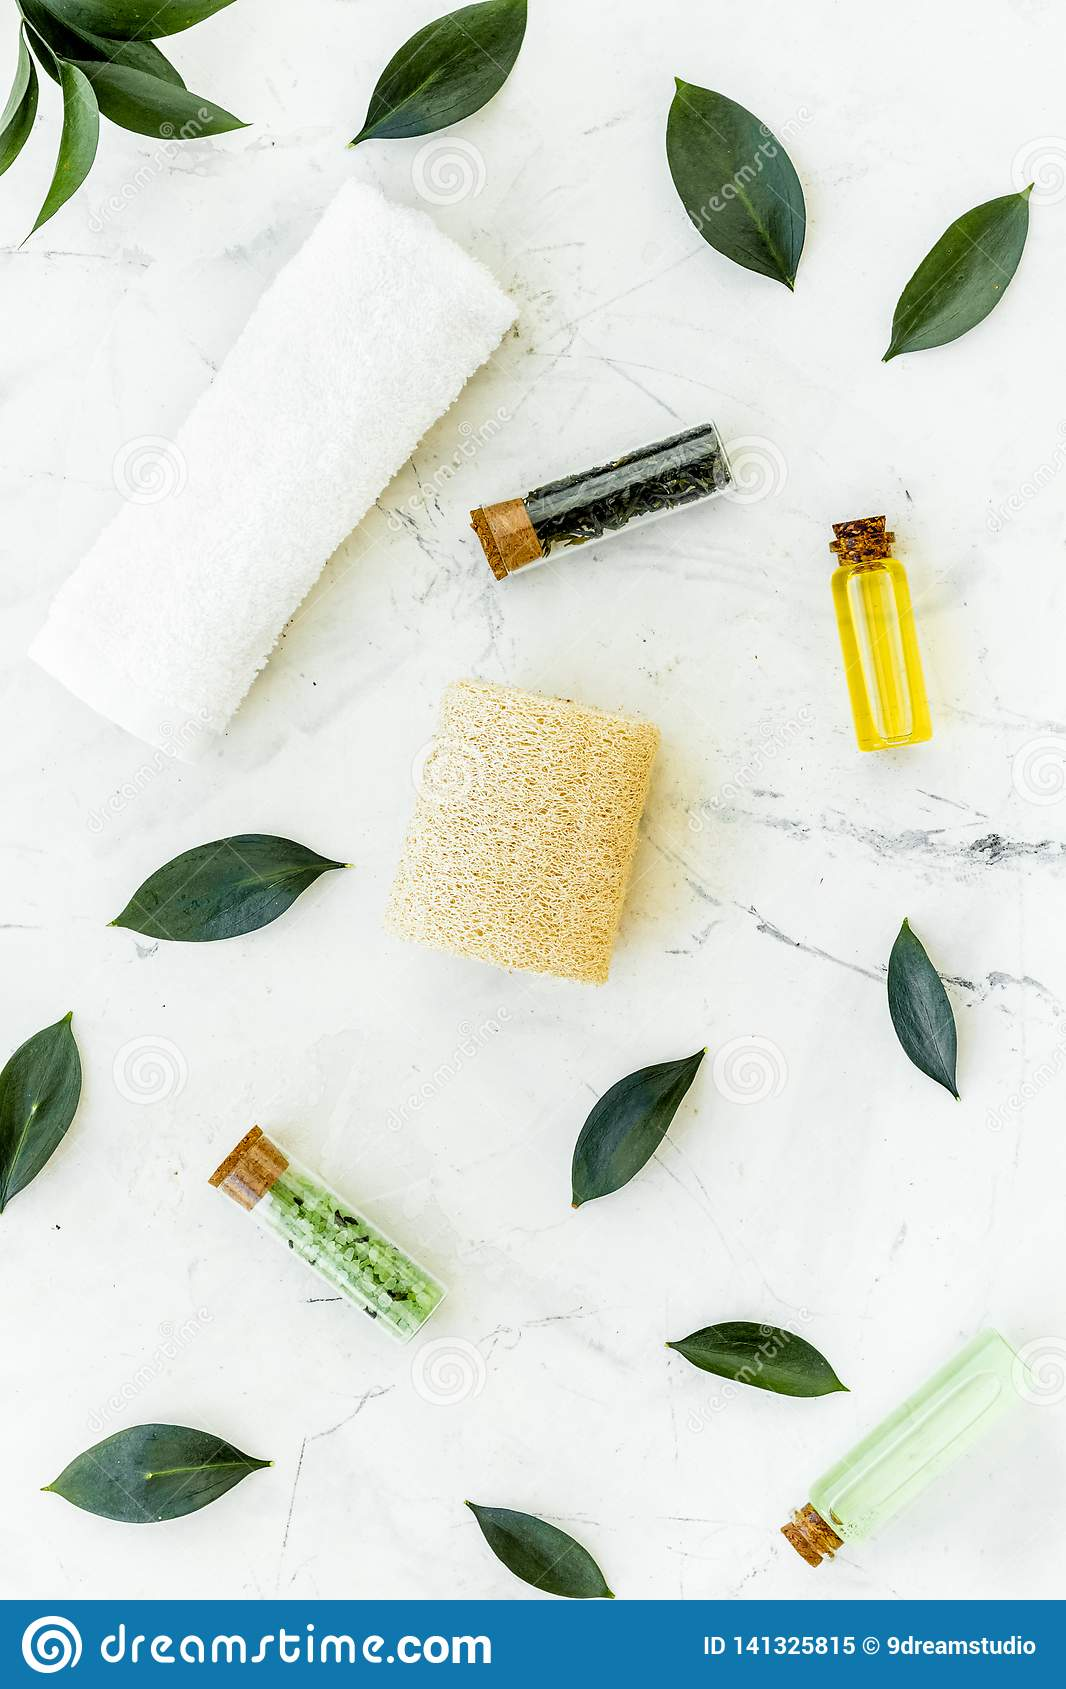 Spa composition with essential tea tree oil. Fresh tea tree leaves, natural cosmetics, towel on white stone background